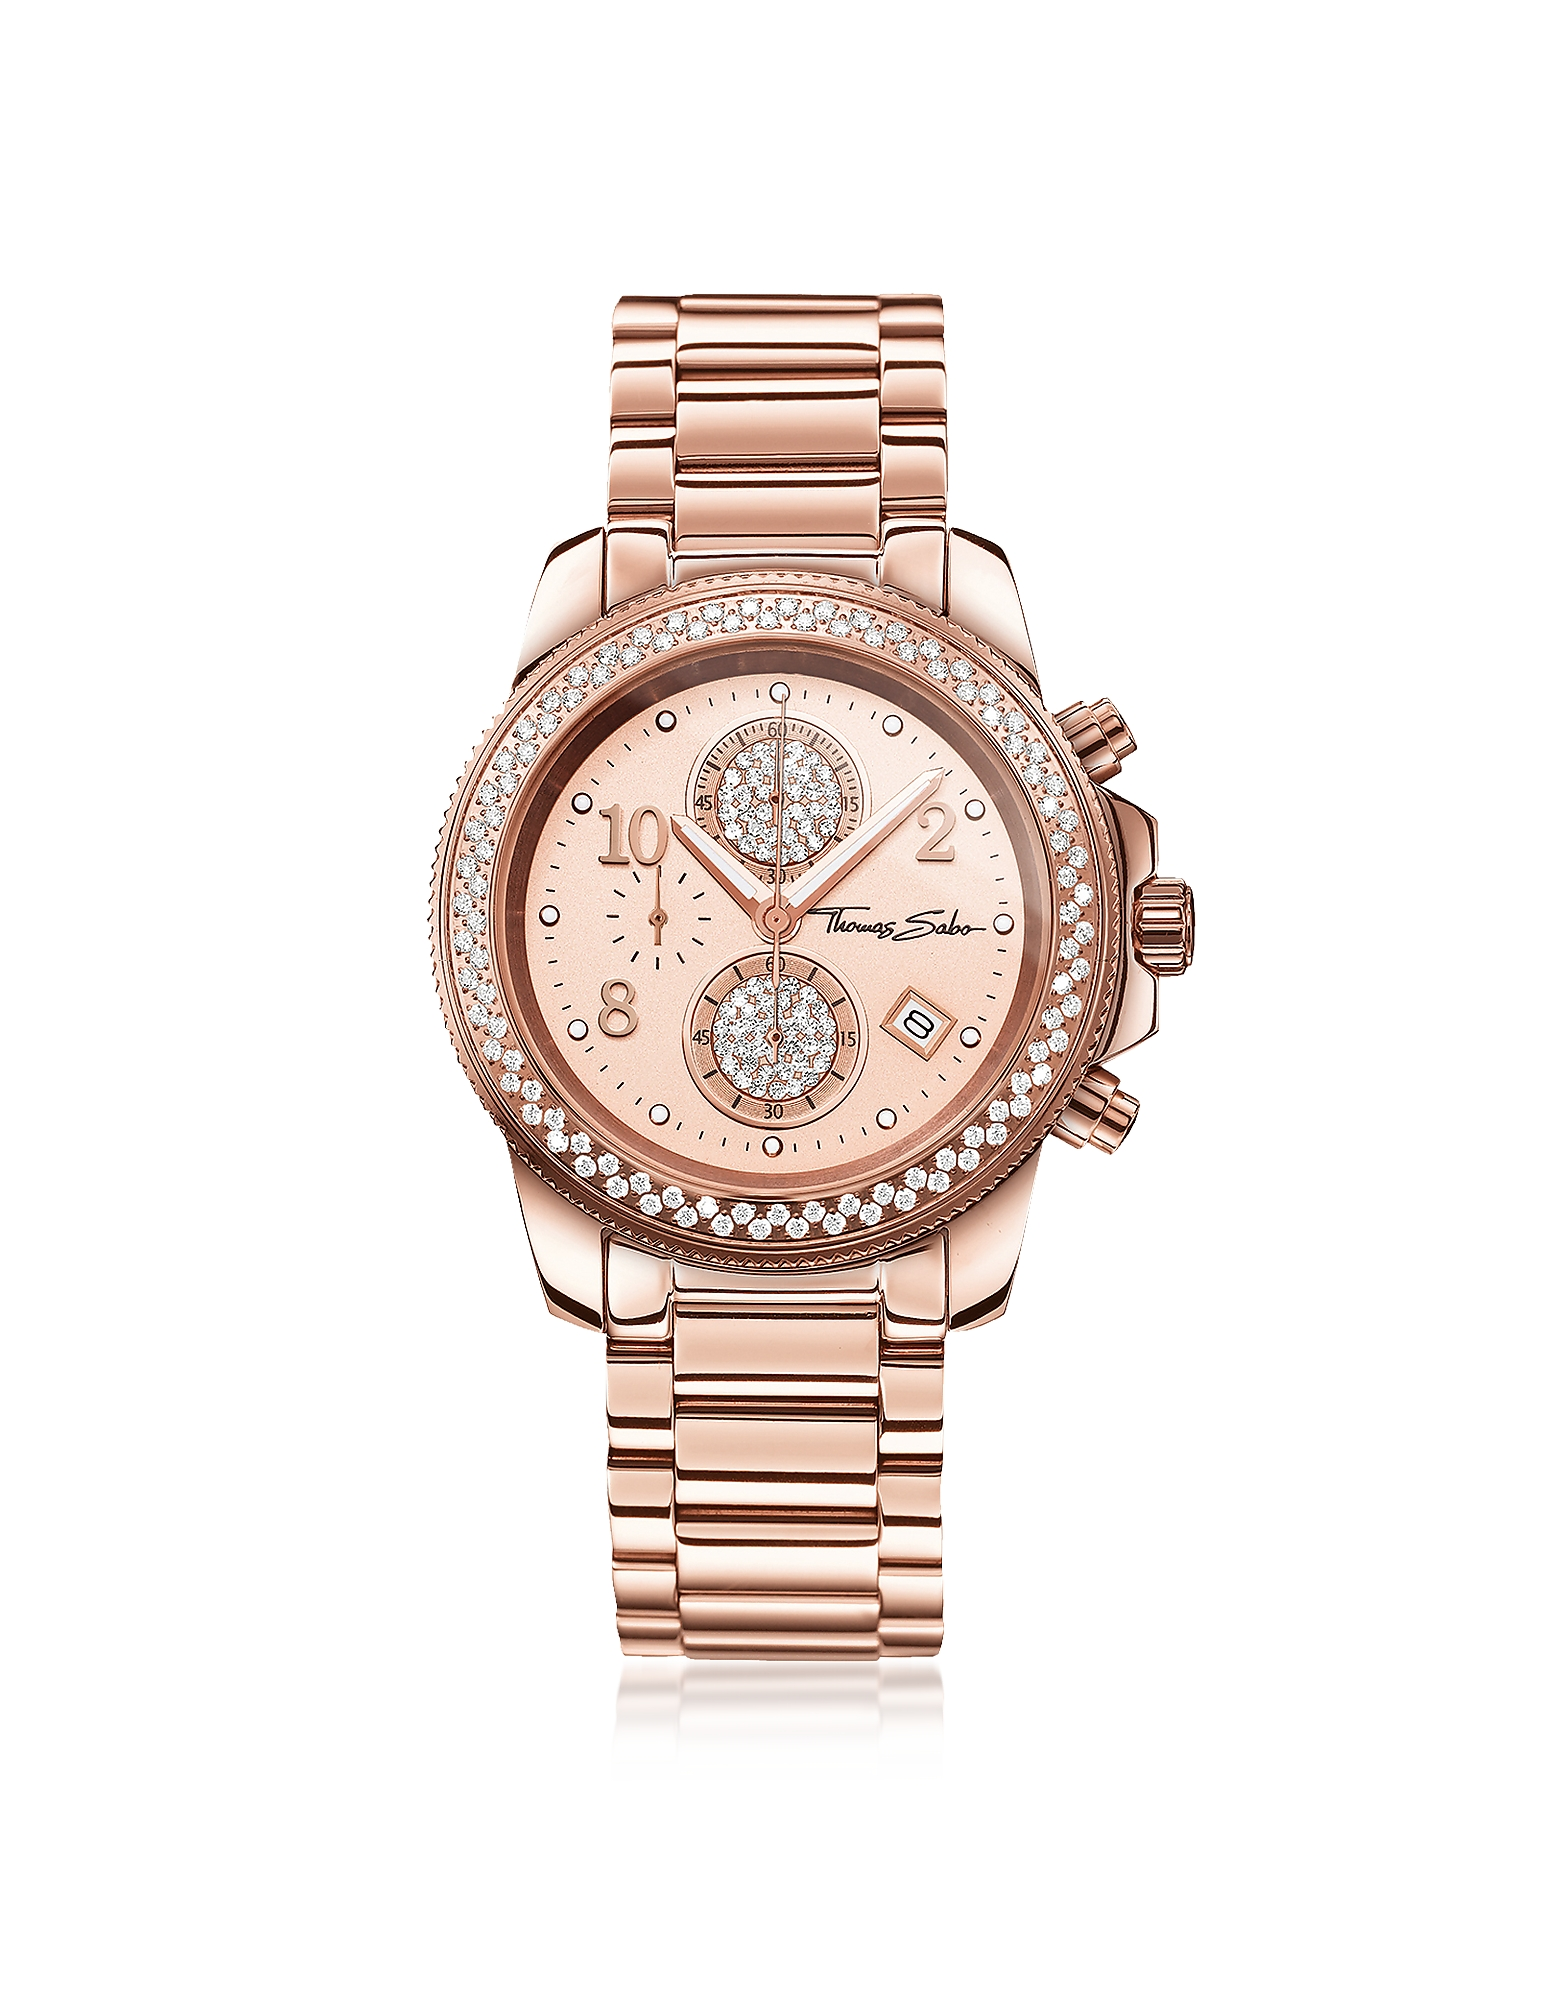 Thomas Sabo Women's Watches, Glam Chrono Rose Gold Stainless Steel Women's Watch w/Crystals